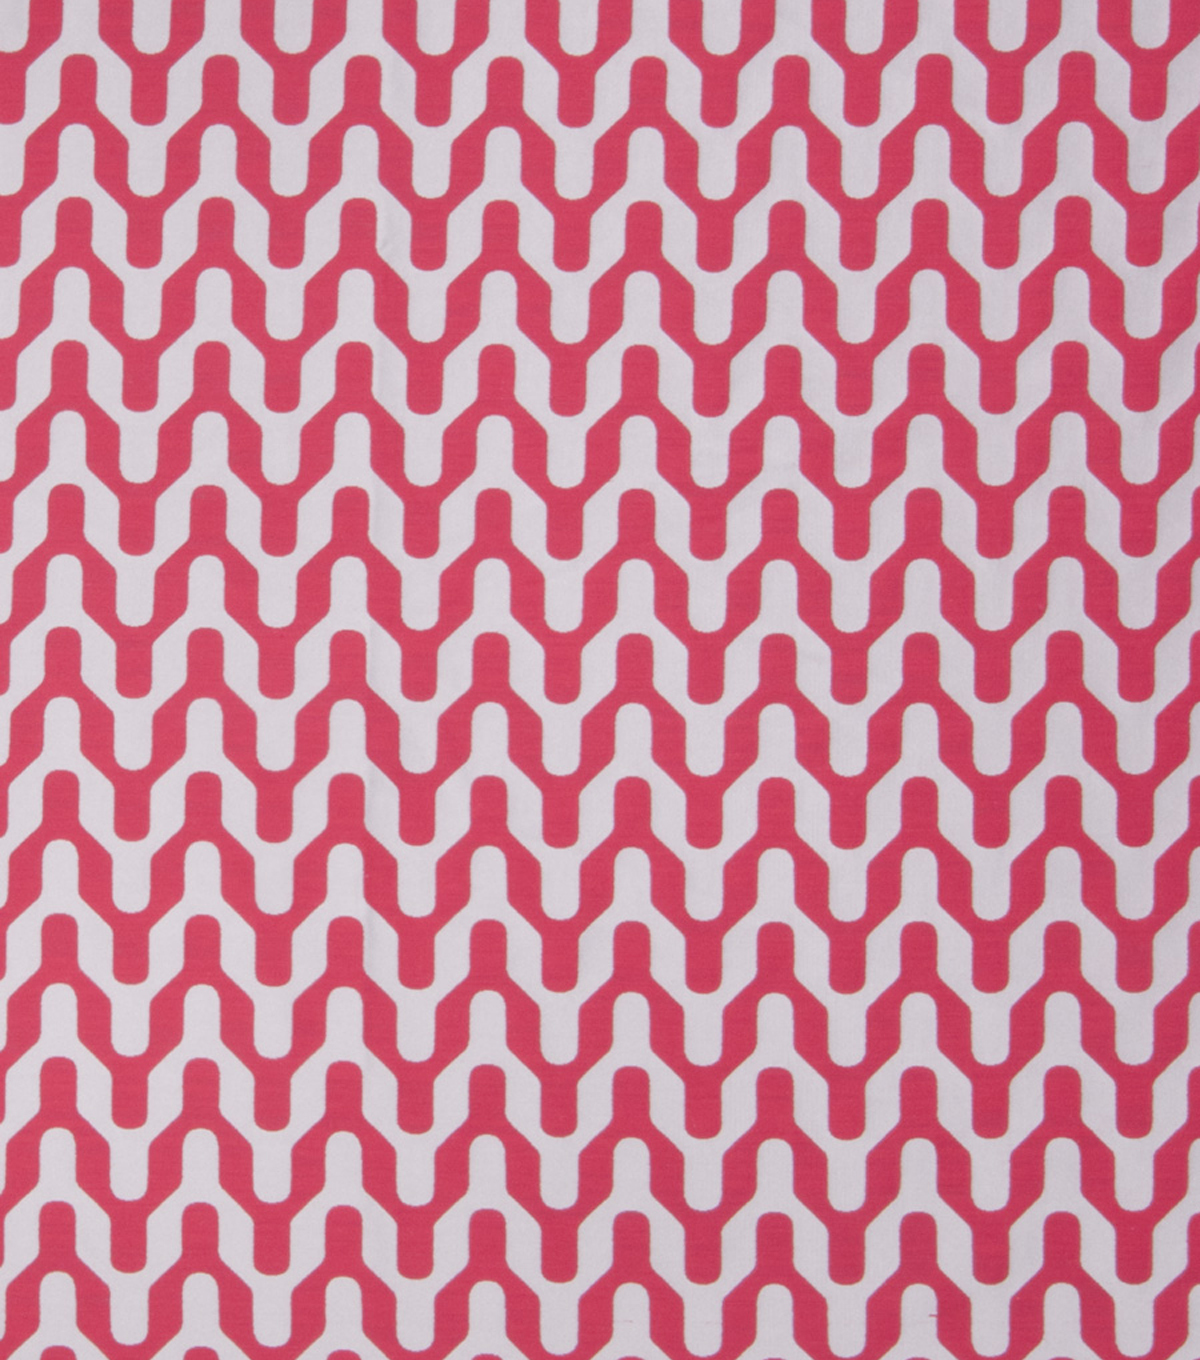 Home Decor 8\u0022x8\u0022 Fabric Swatch-Eaton Square Auction / Crimson